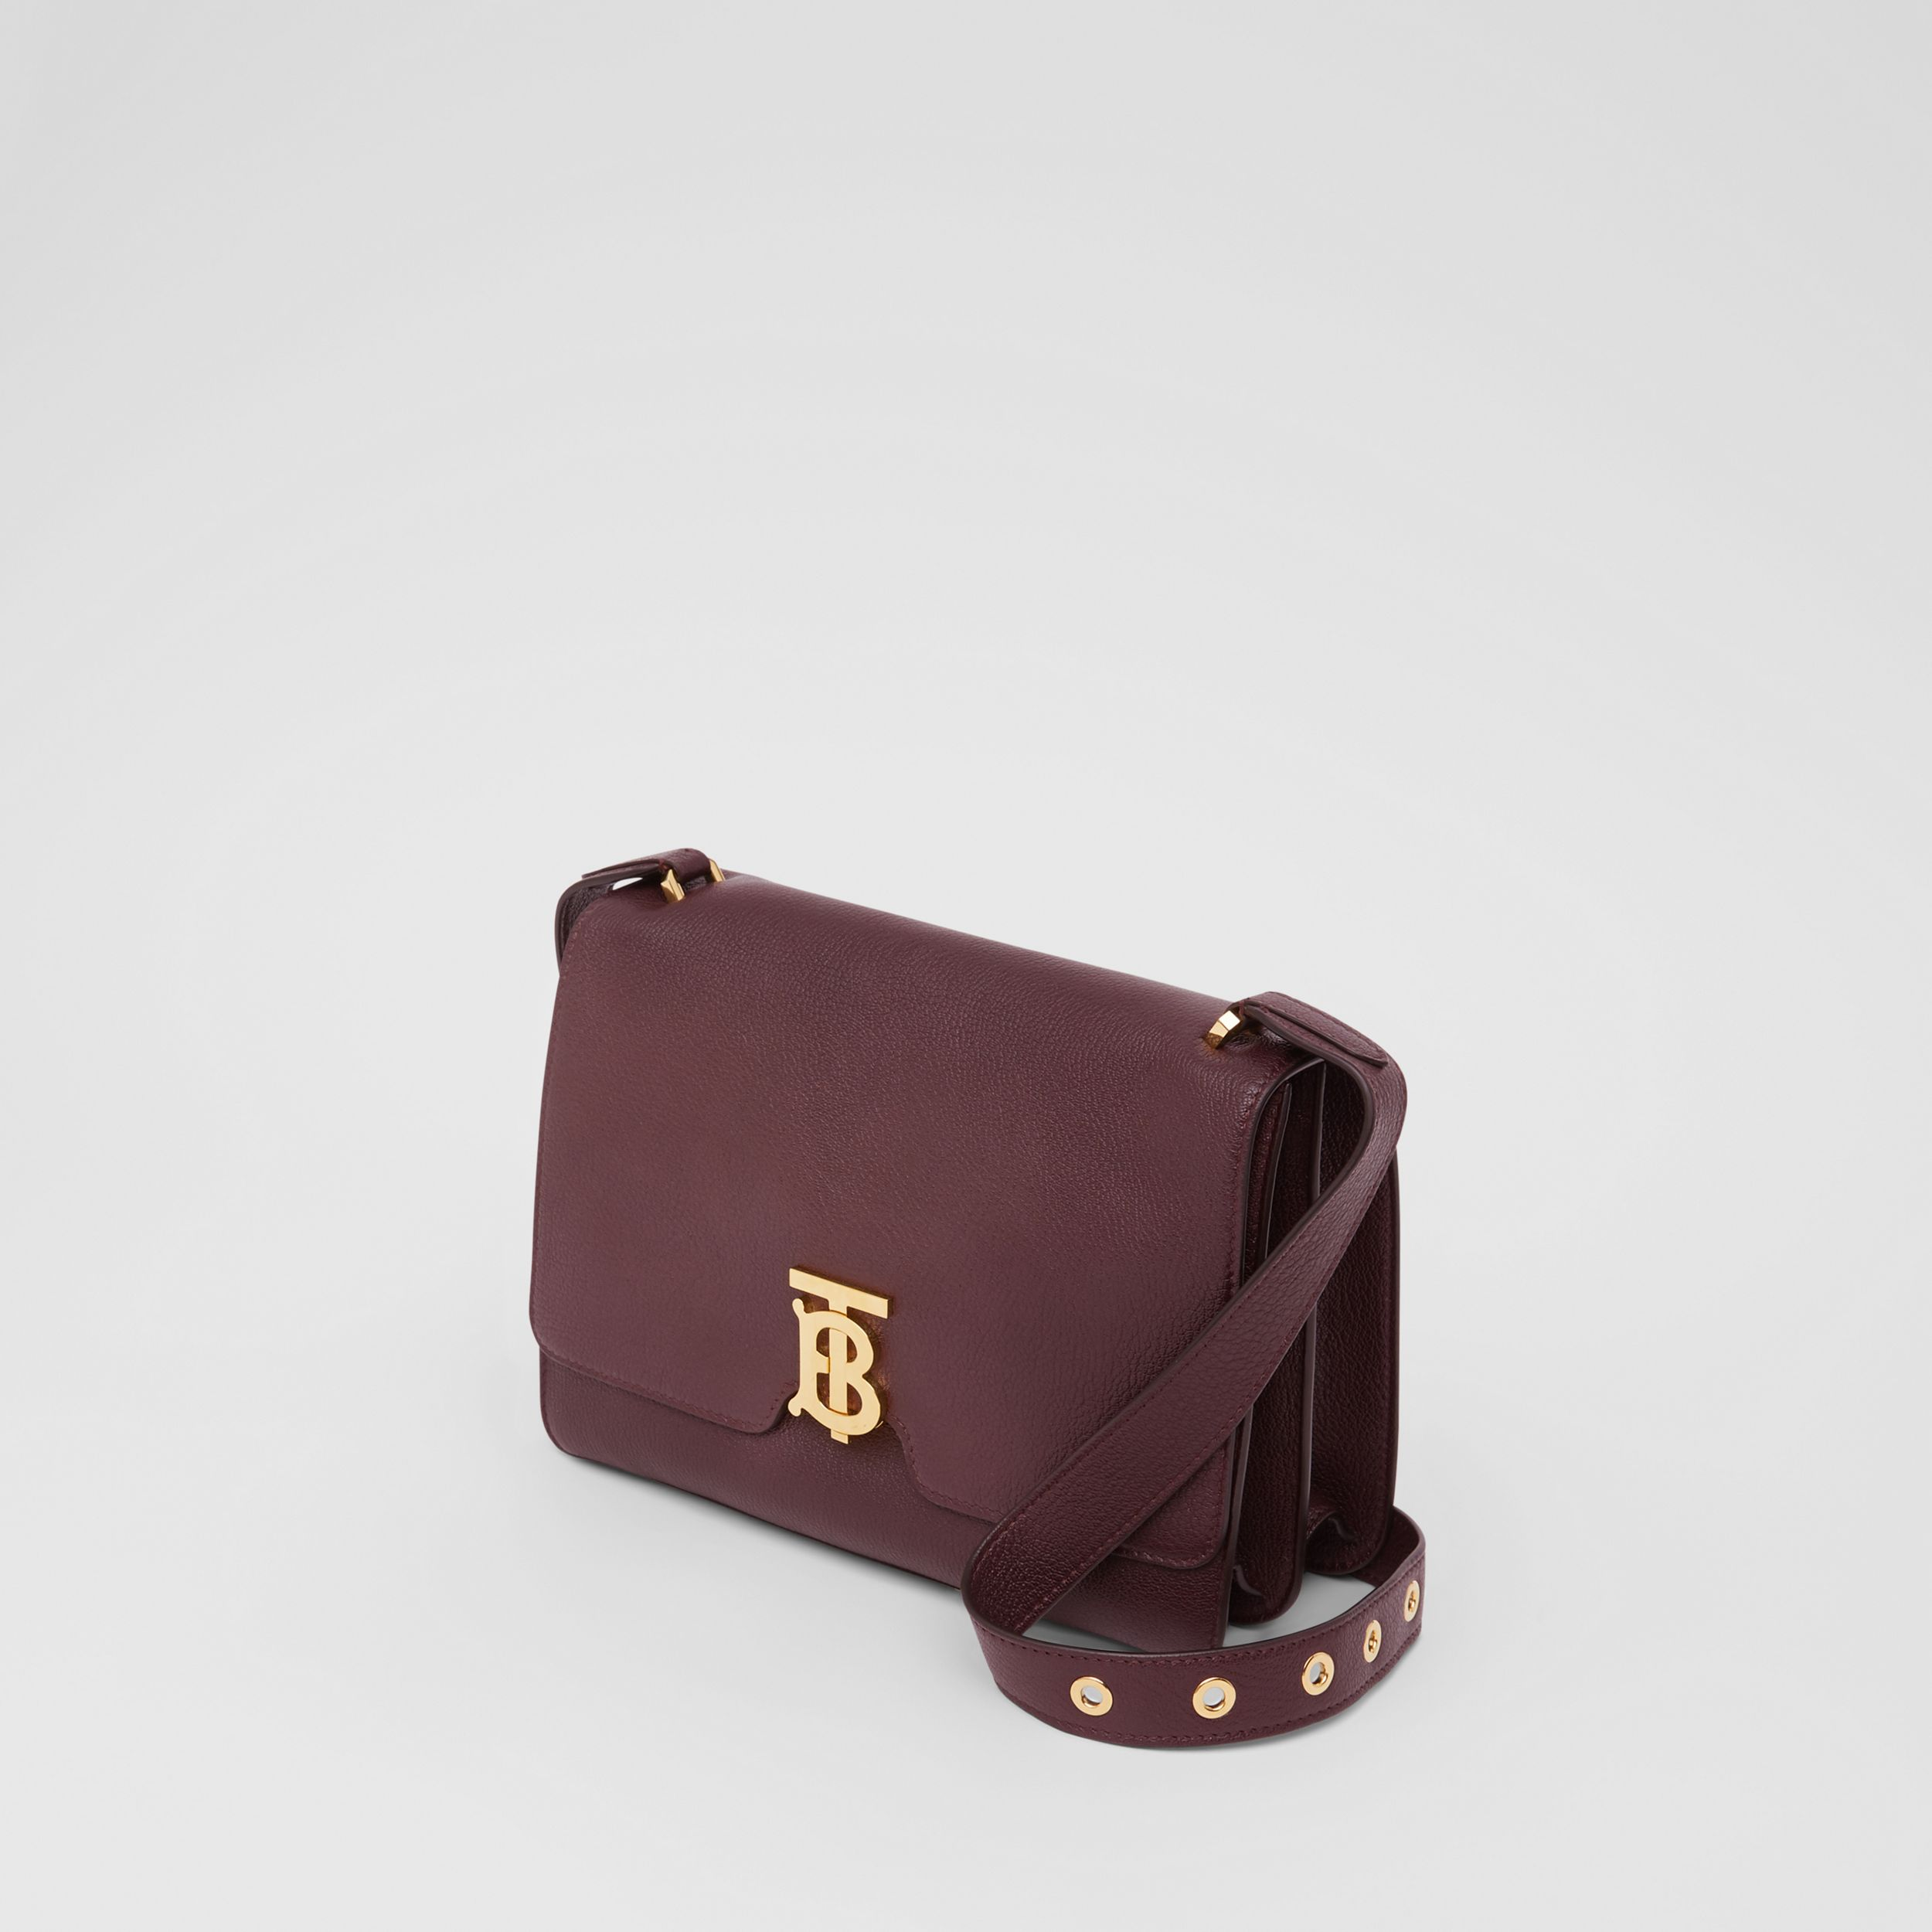 Medium Grainy Leather Alice Bag in Deep Claret - Women | Burberry - 4